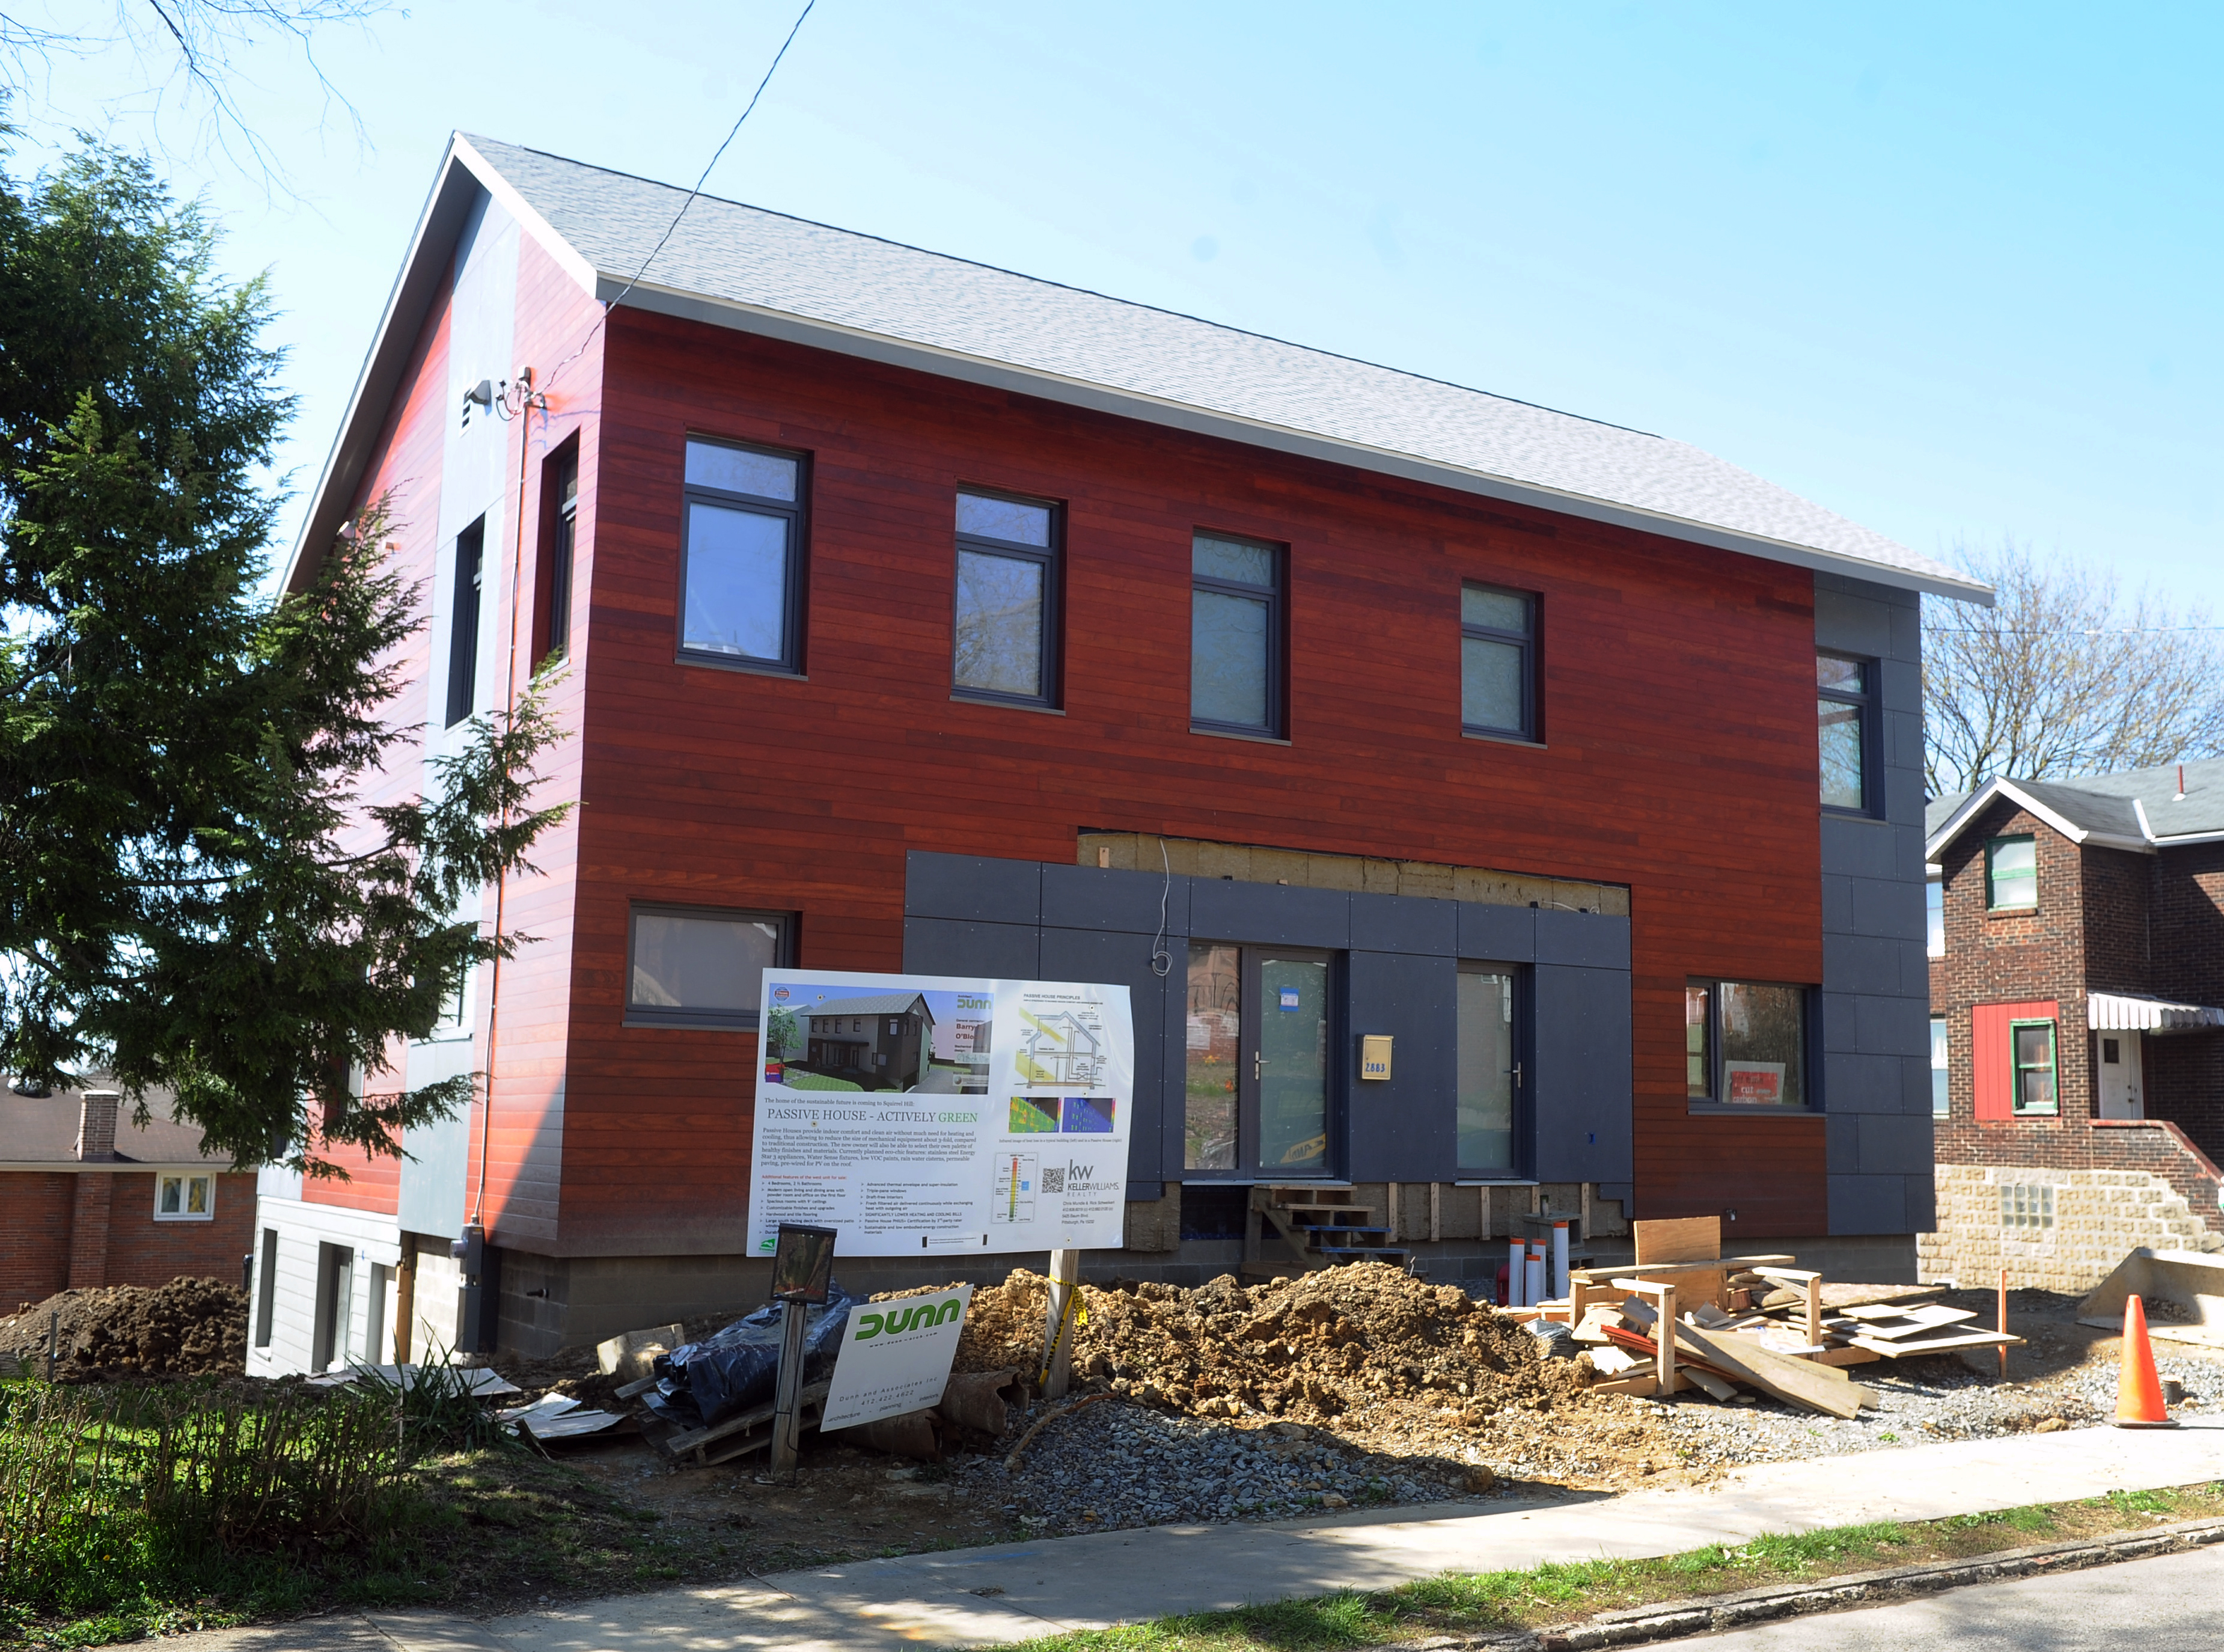 20160413ng-Greenbuilding1 A passive house, a low-energy consuming duplex, under construction on Fernwald Road is one of three projects across the state to receive a grant for high-performance green homes and small businesses.